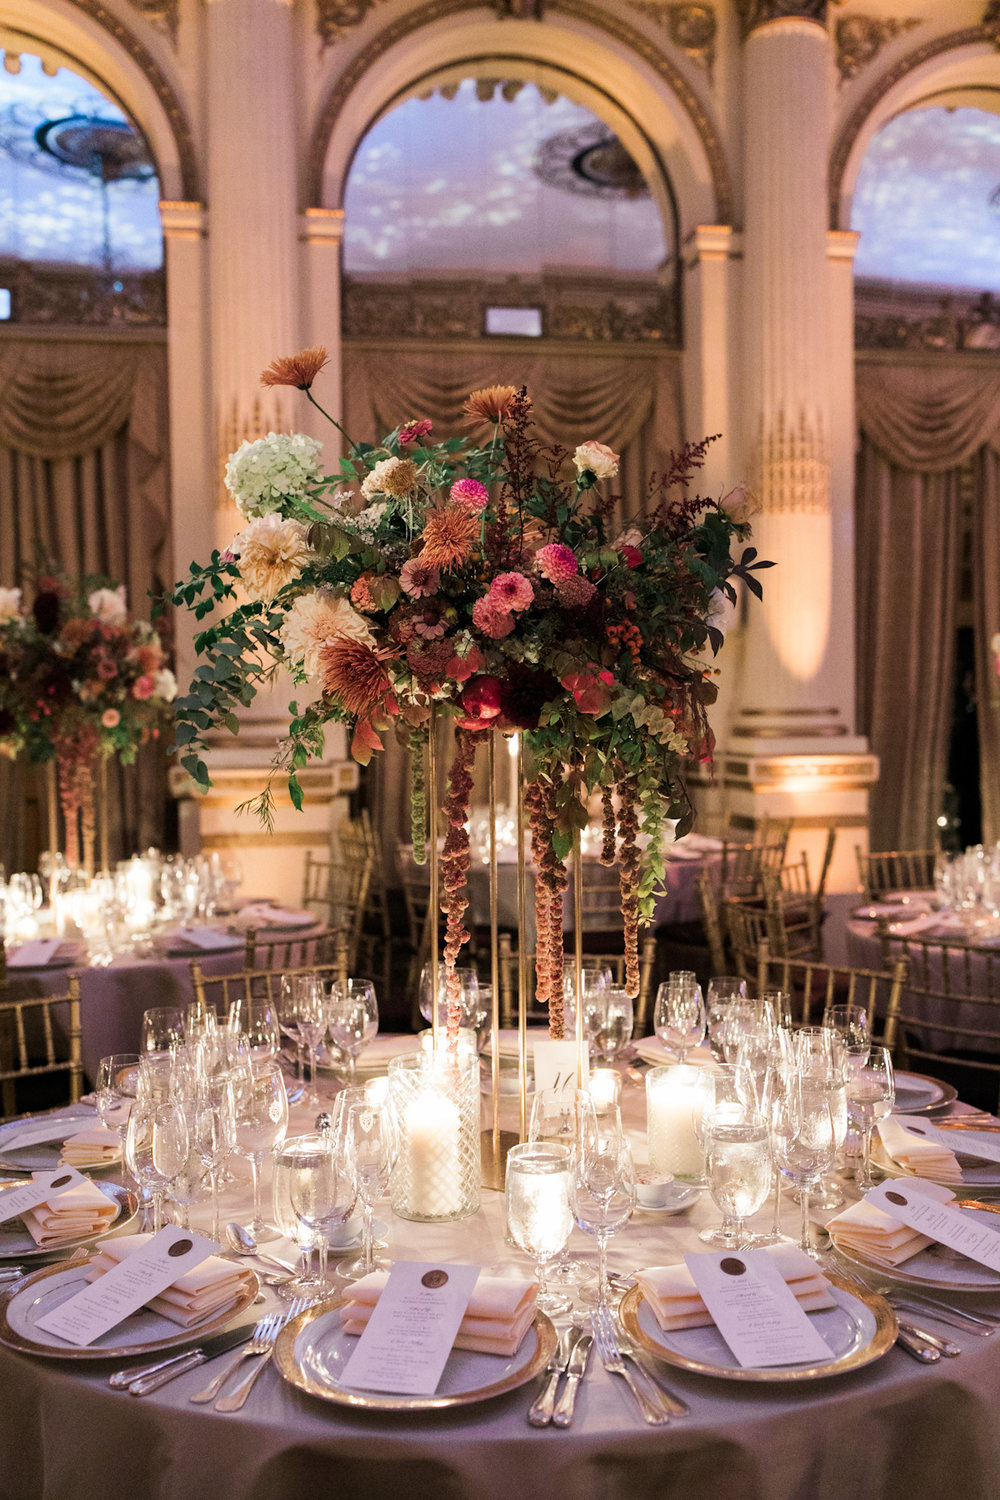 Plaza wedding tablescape with flowers, candles and chargers